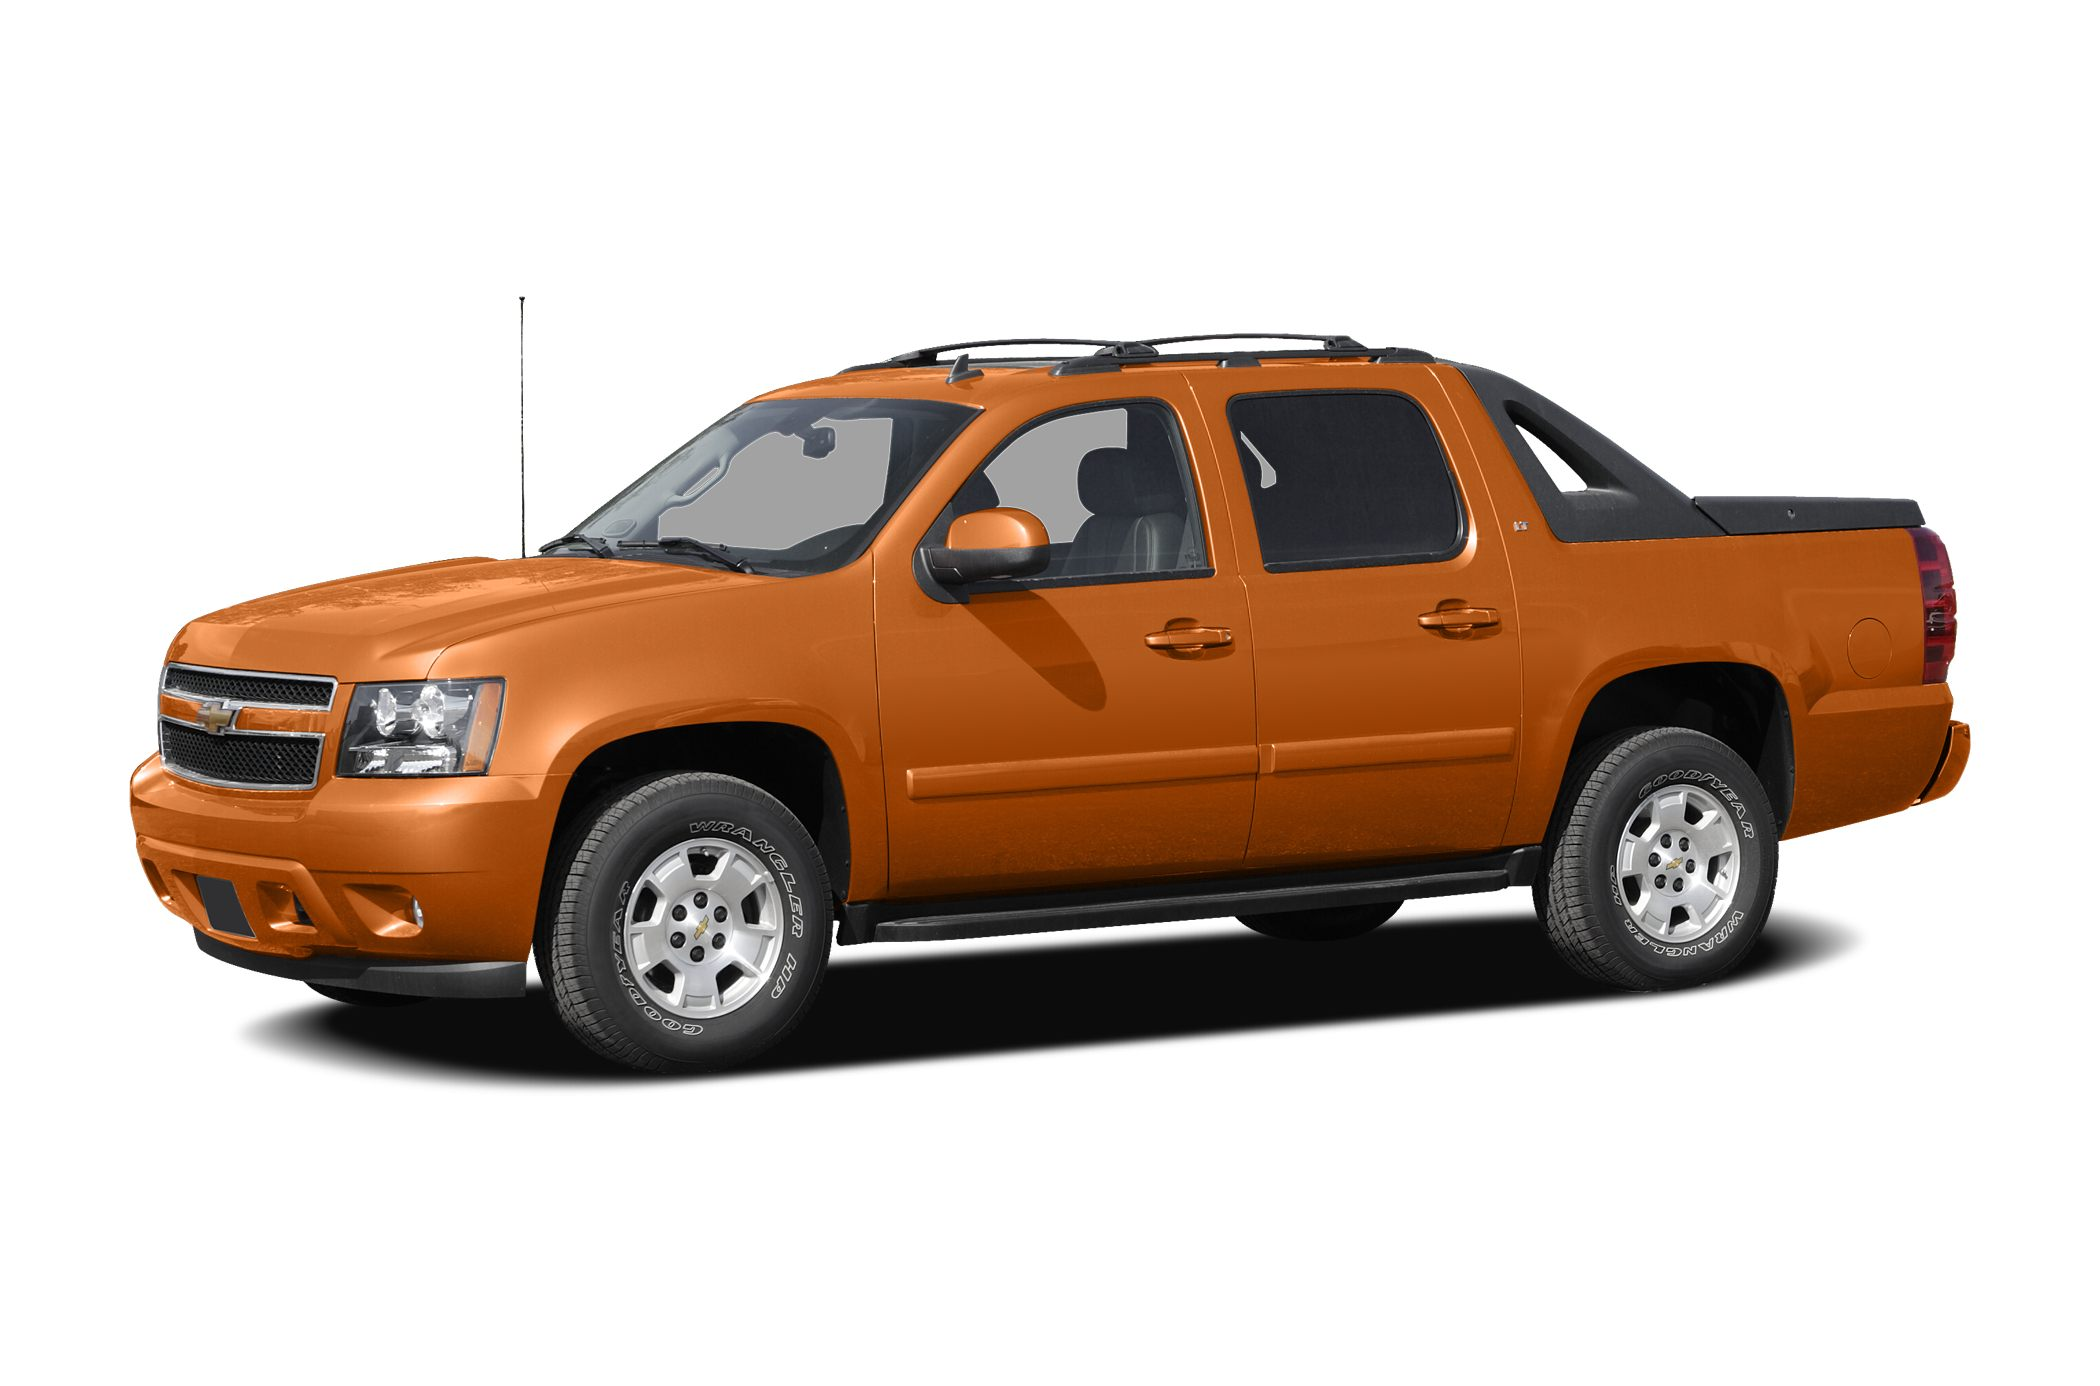 2008 Chevrolet Avalanche 1500 LS Crew Cab Pickup for sale in Owosso for $19,989 with 97,503 miles.